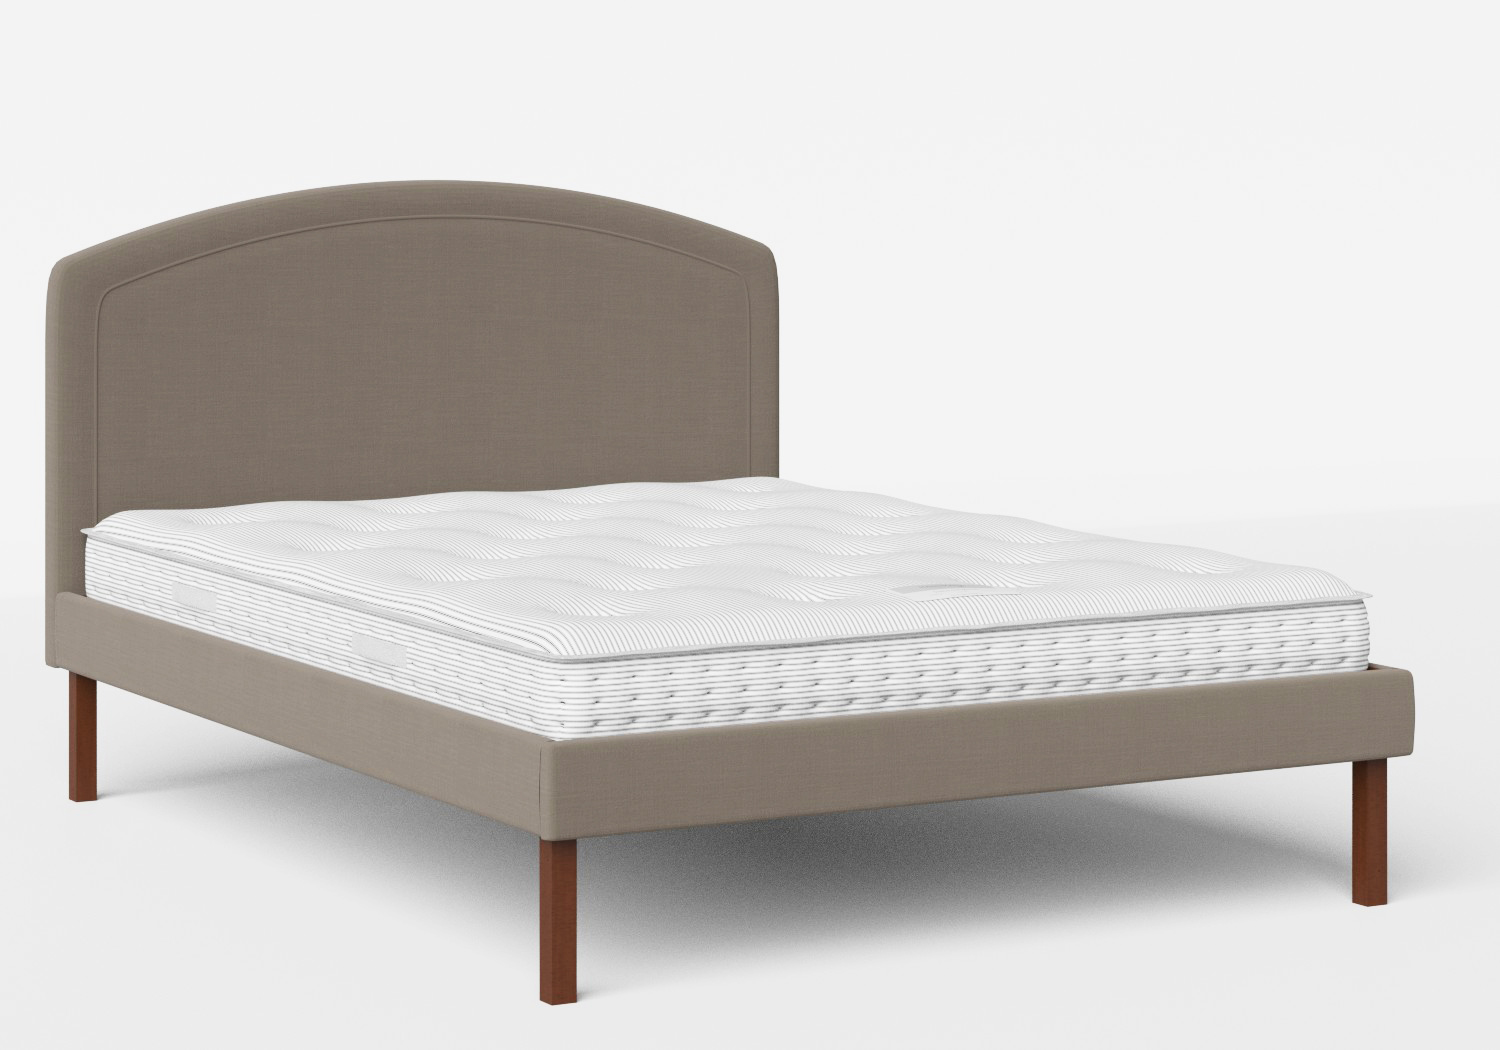 Okawa Upholstered Bed in Grey fabric shown with Juno 1 mattress